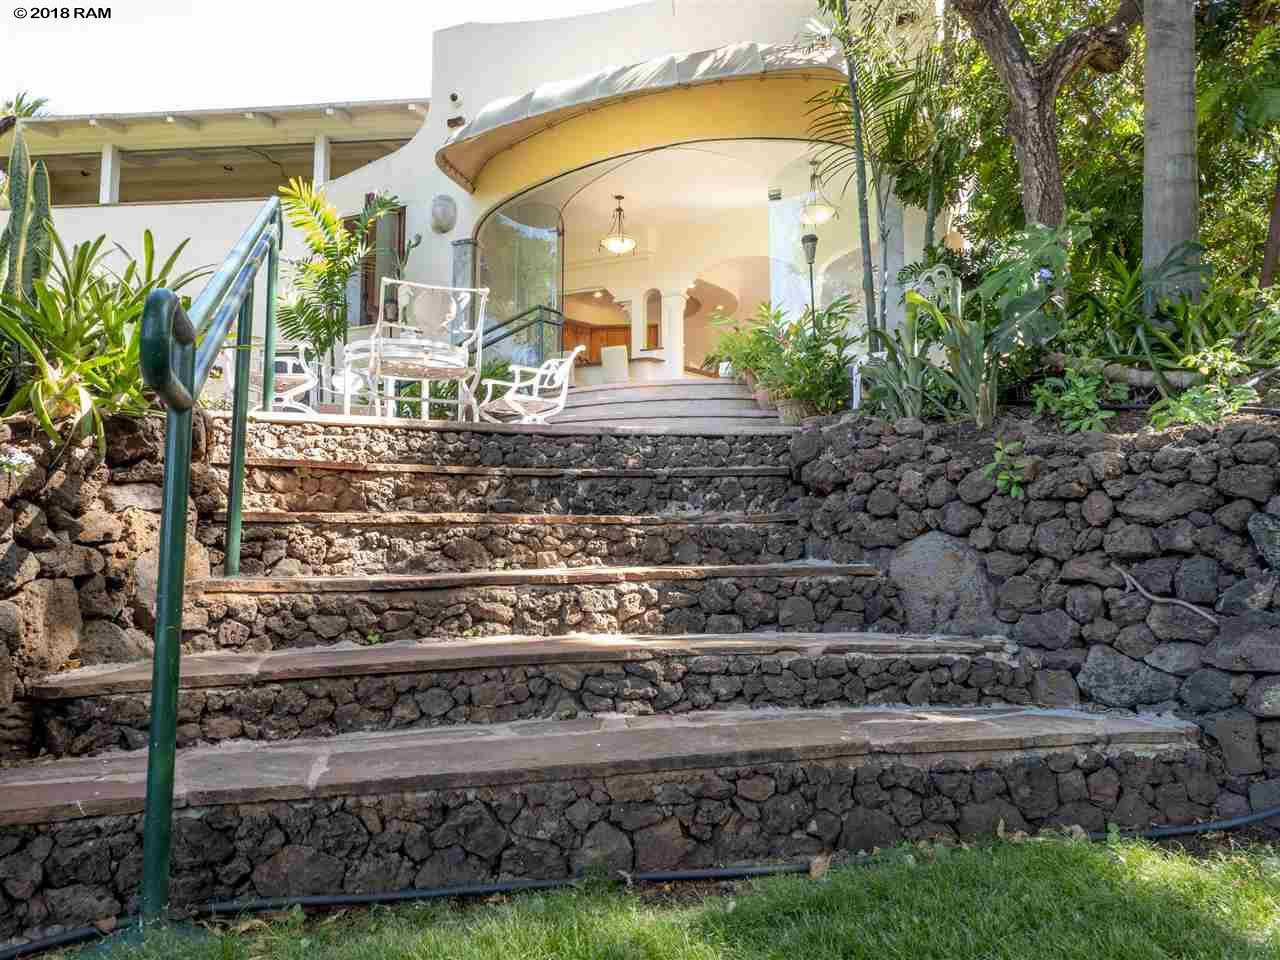 115 Kaimanu Pl in Maui Meadows